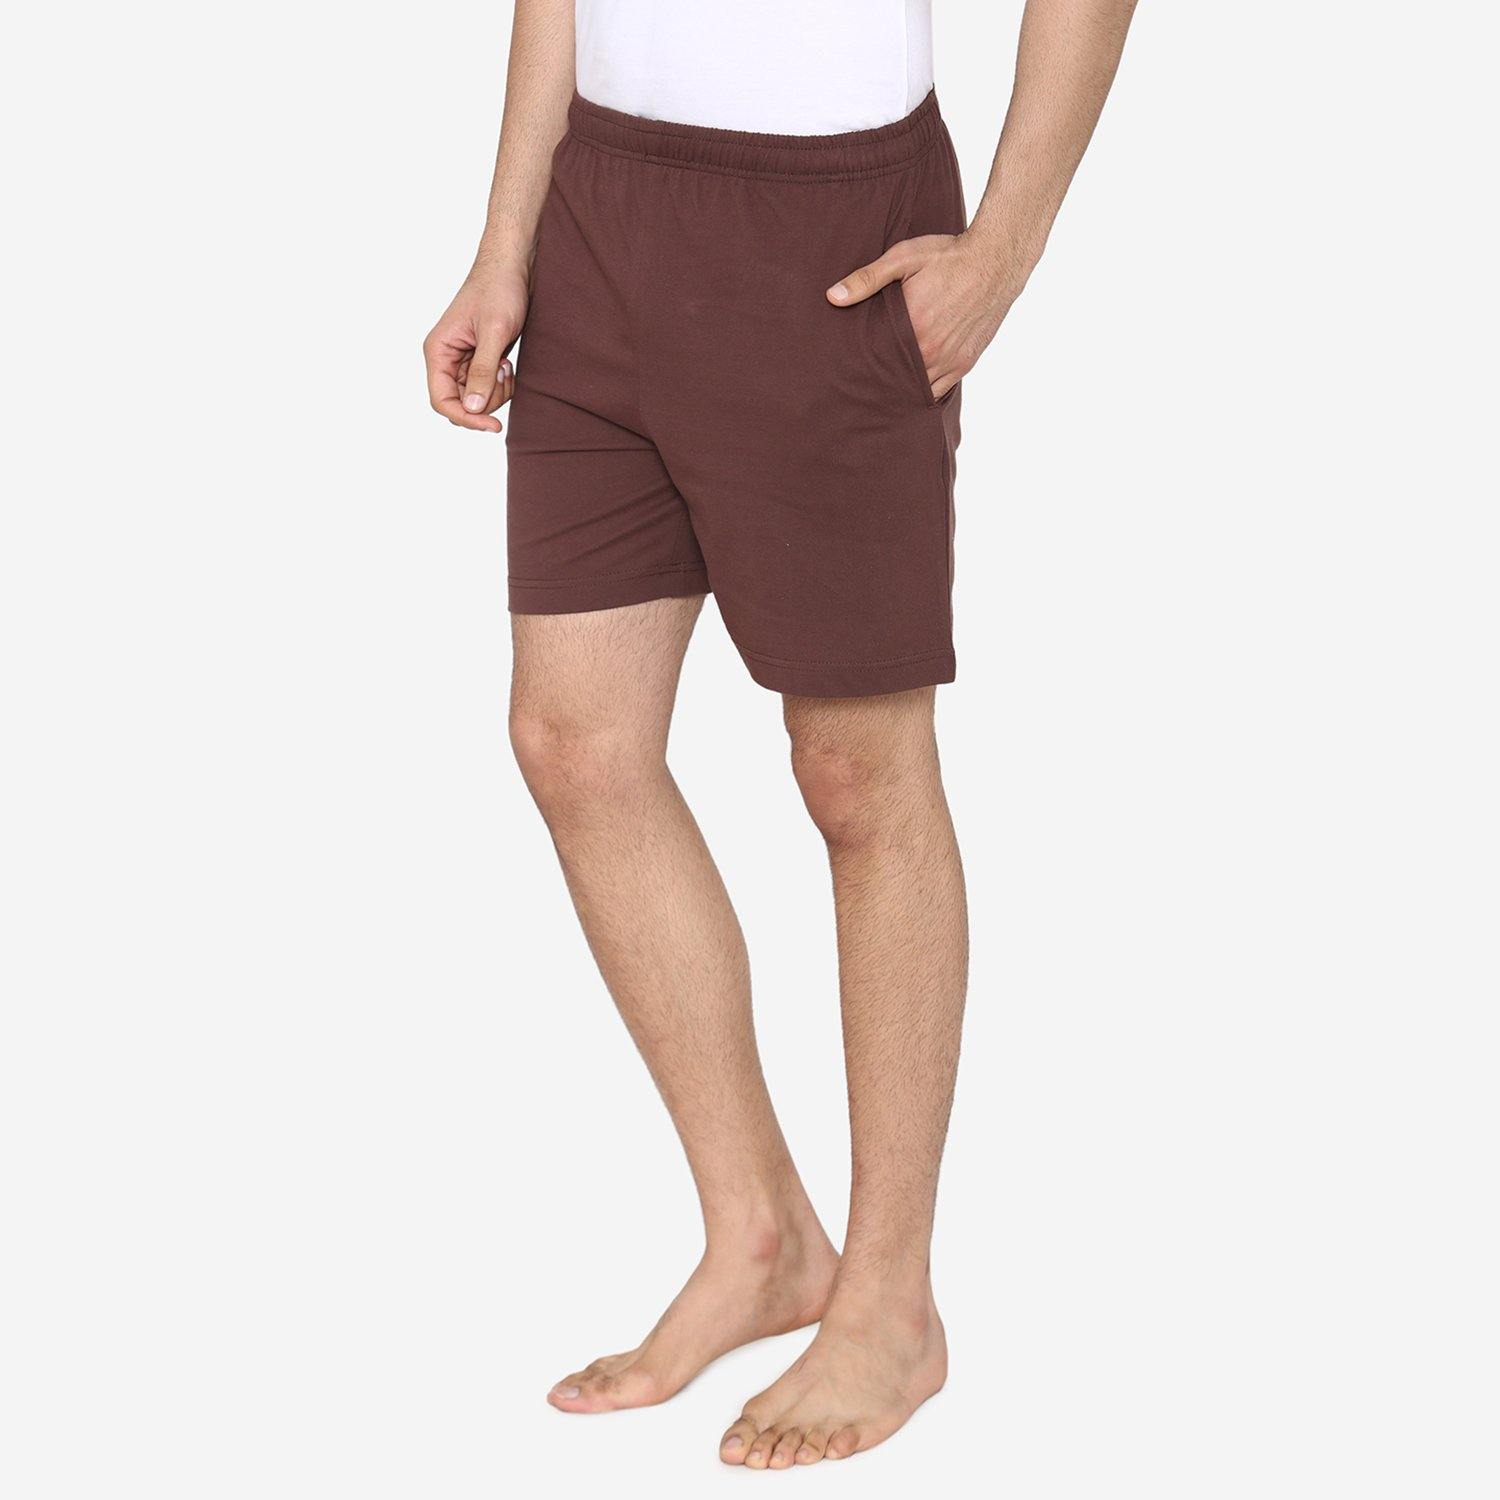 Men's Plain Comfy & Casual Shorts For Summer - Choco